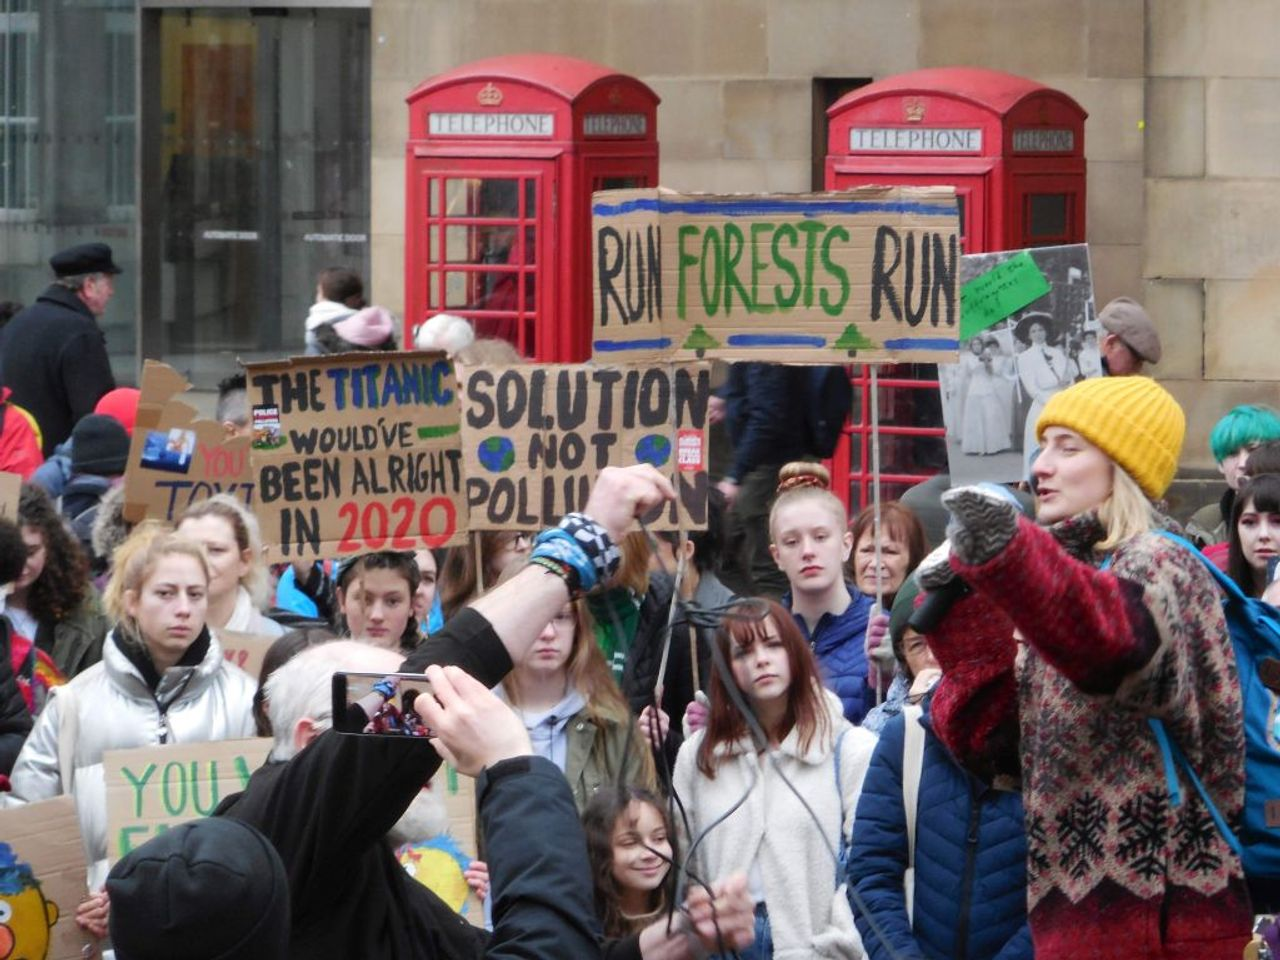 A section of the protest against climate change in Manchester, England's St Peter's Square